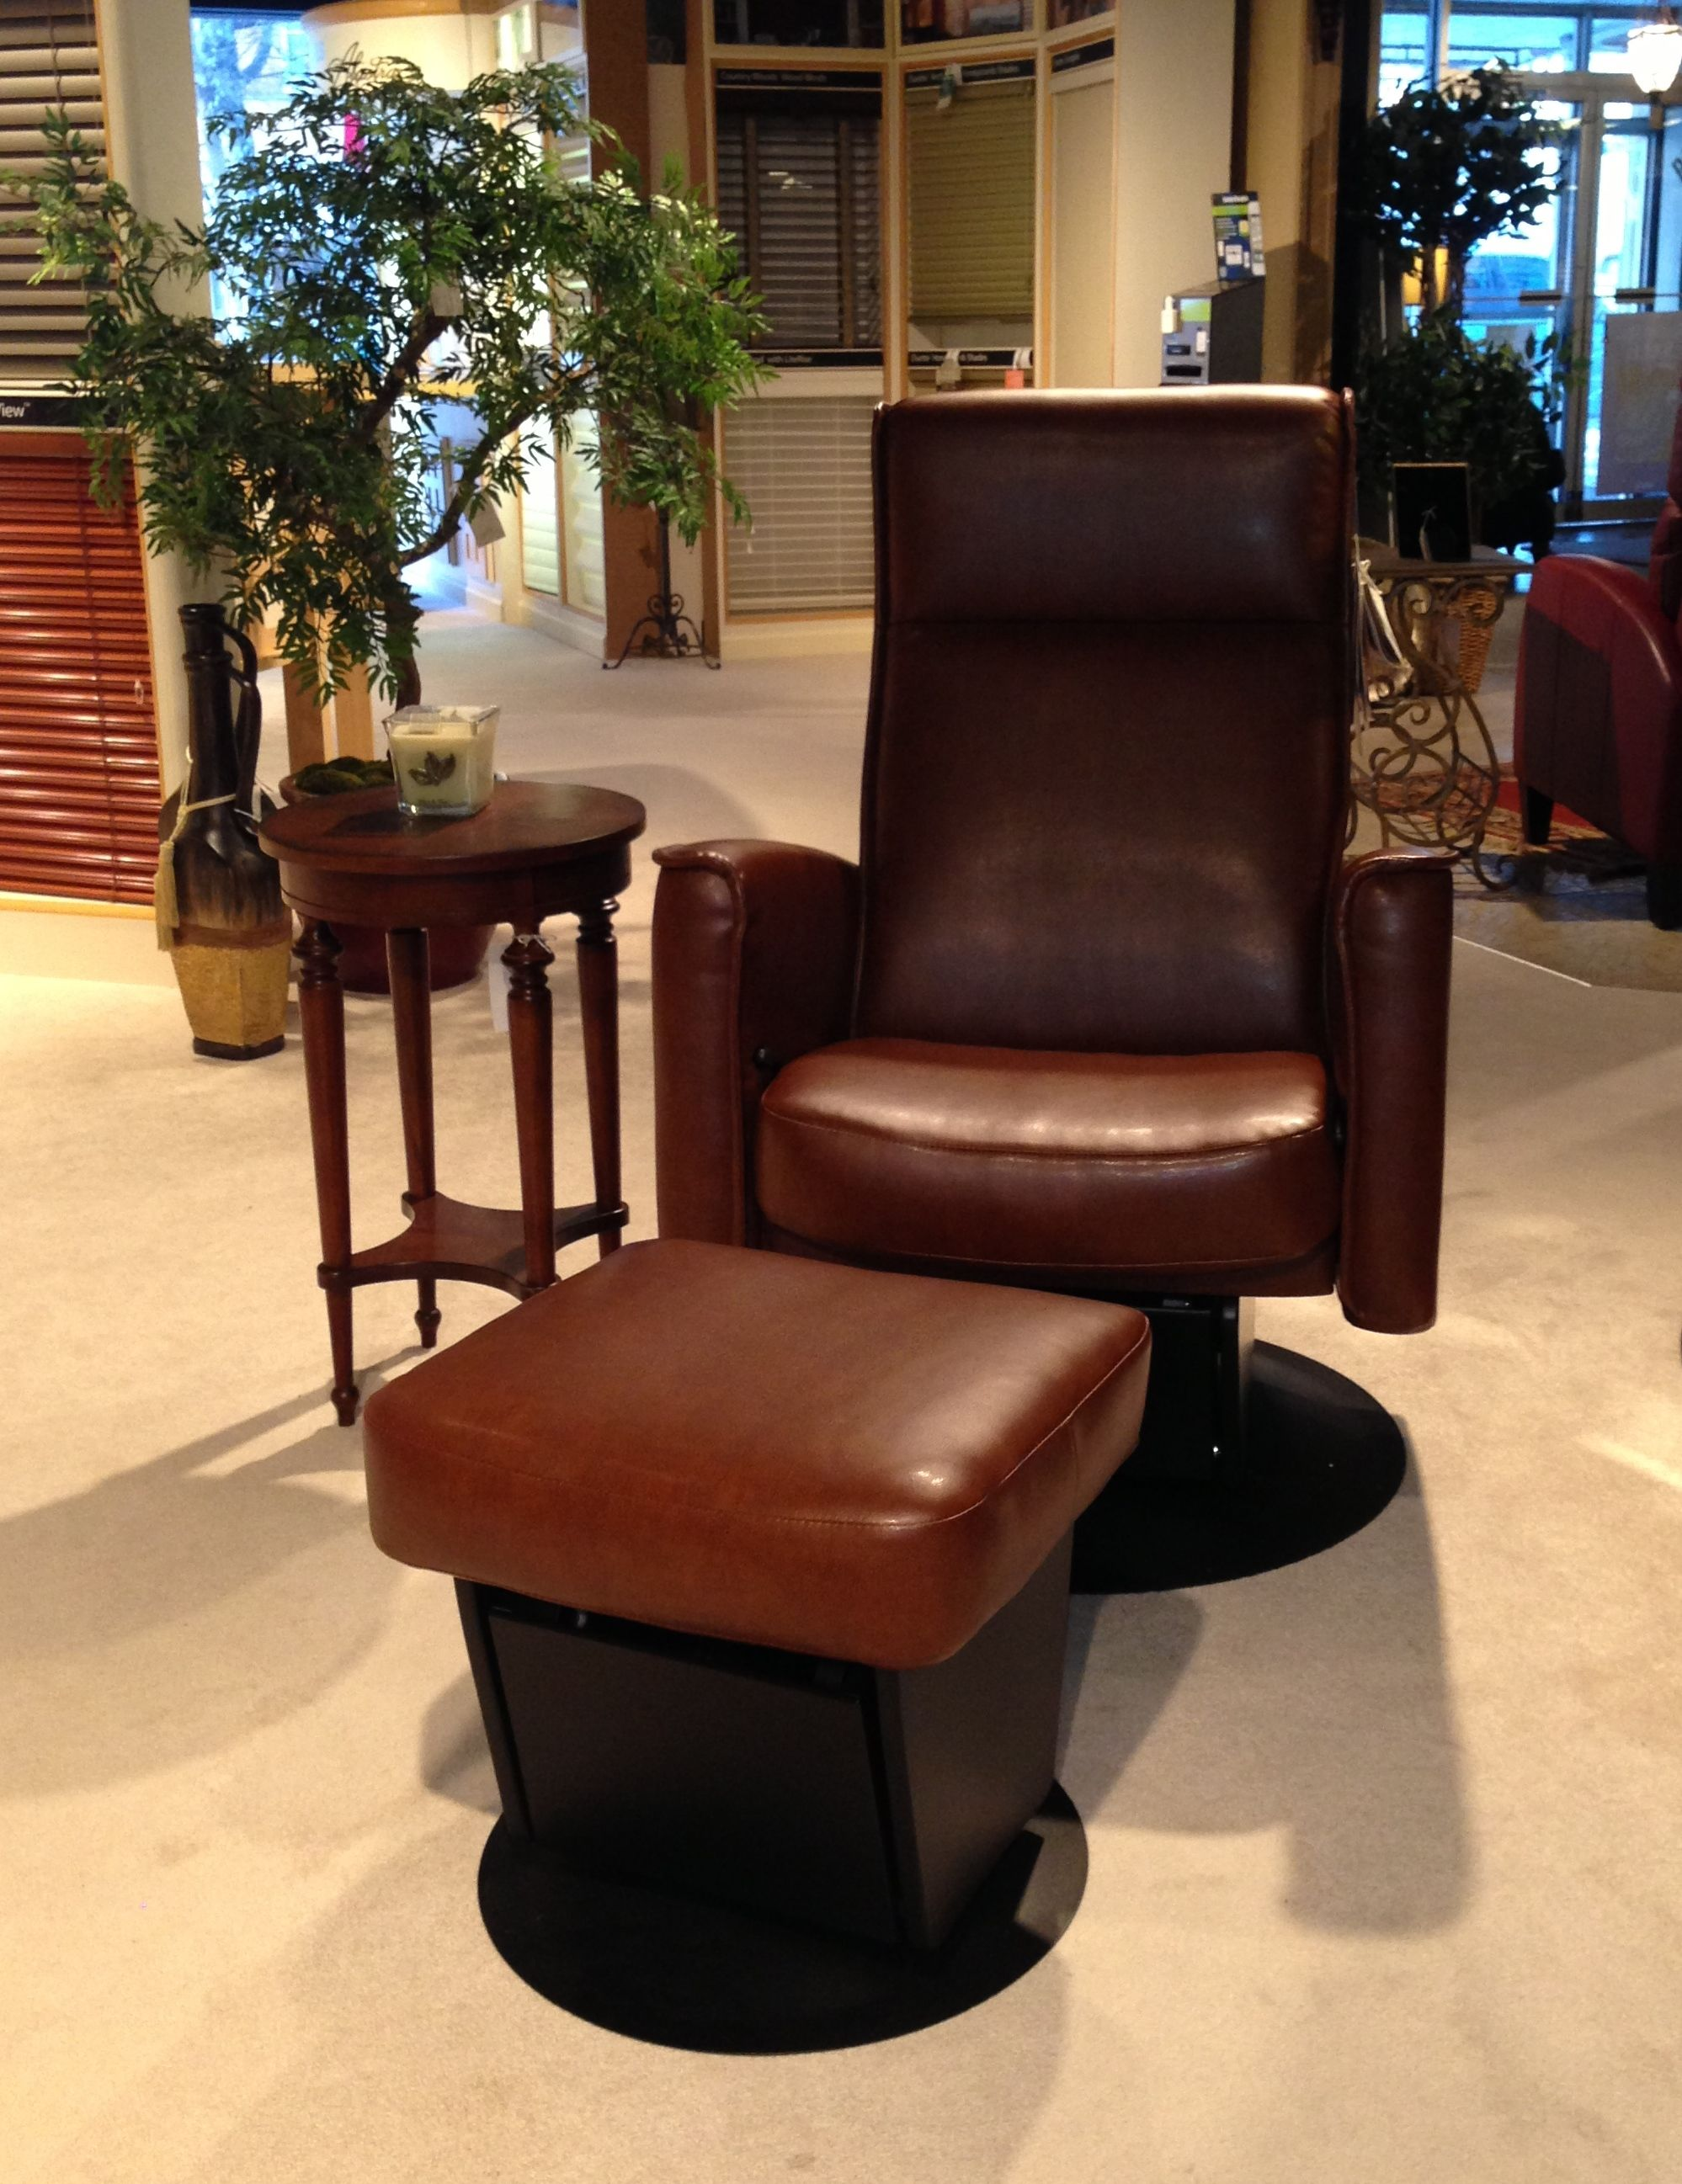 Dutalier Glider With Ottoman Glide Lock Recline And Swivel 28 W X 34 D X 41 H Bonded